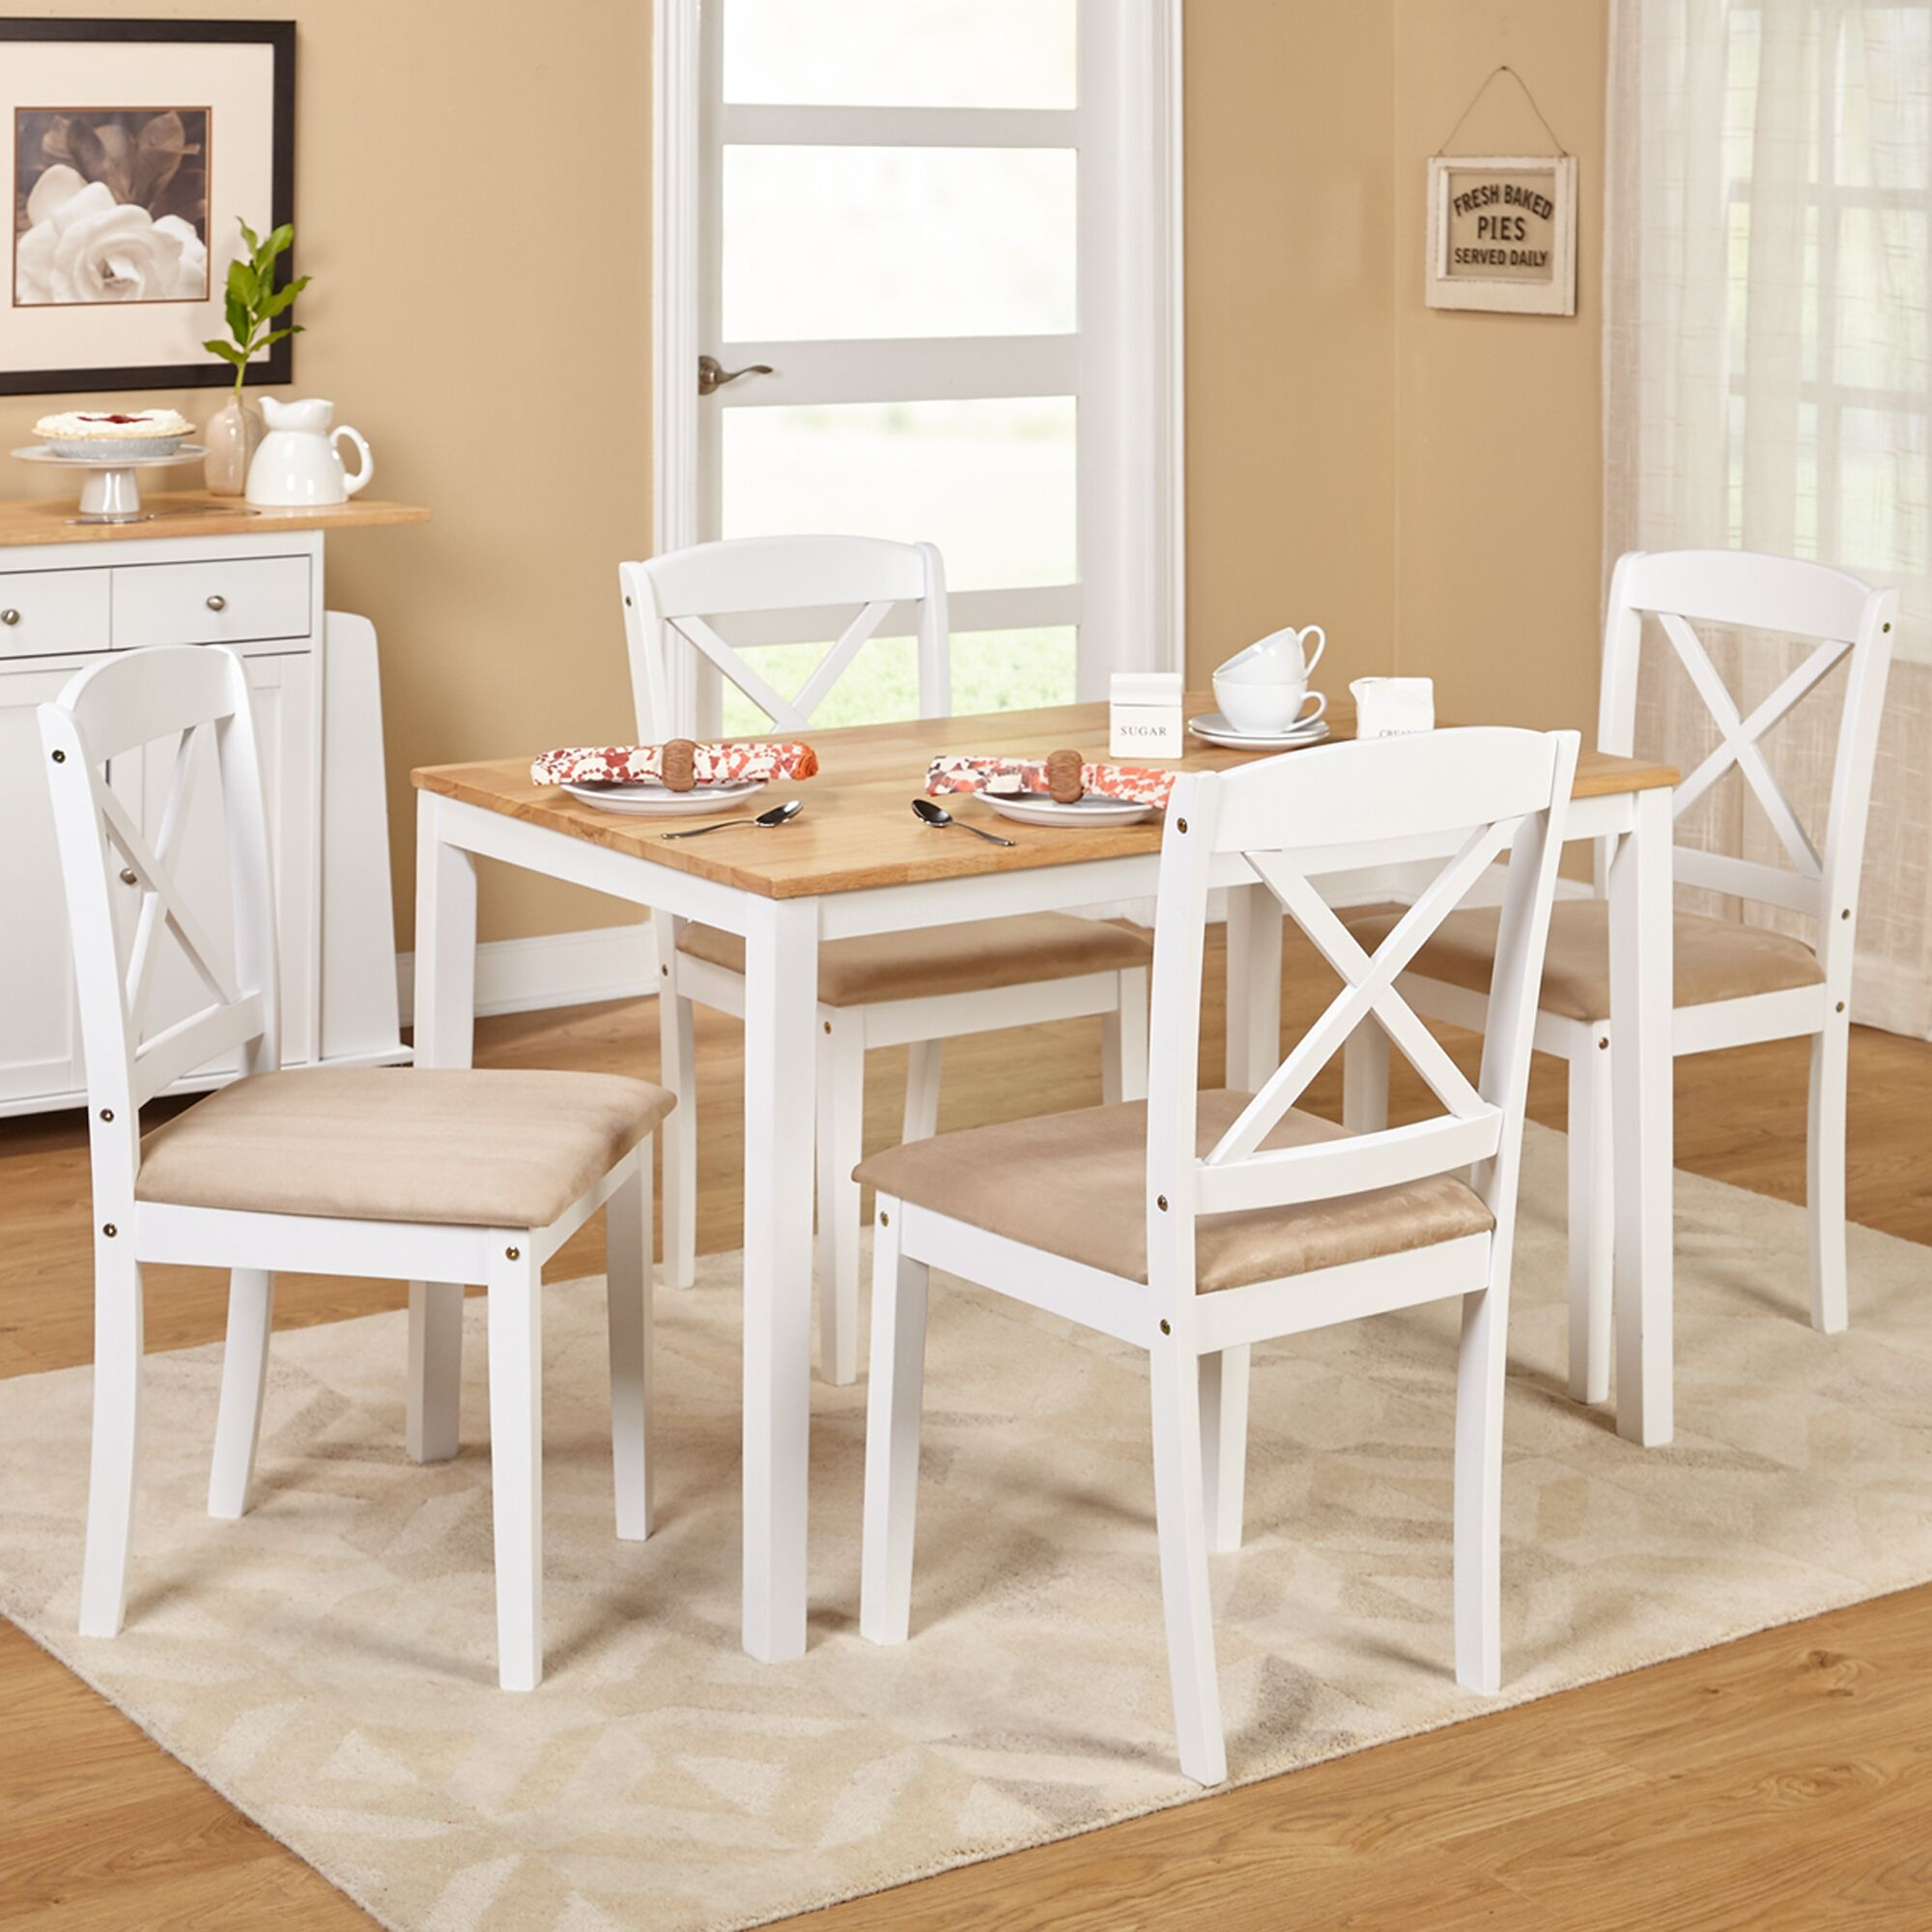 Dining Table Sets Scarlett 5 Piece Dining Set